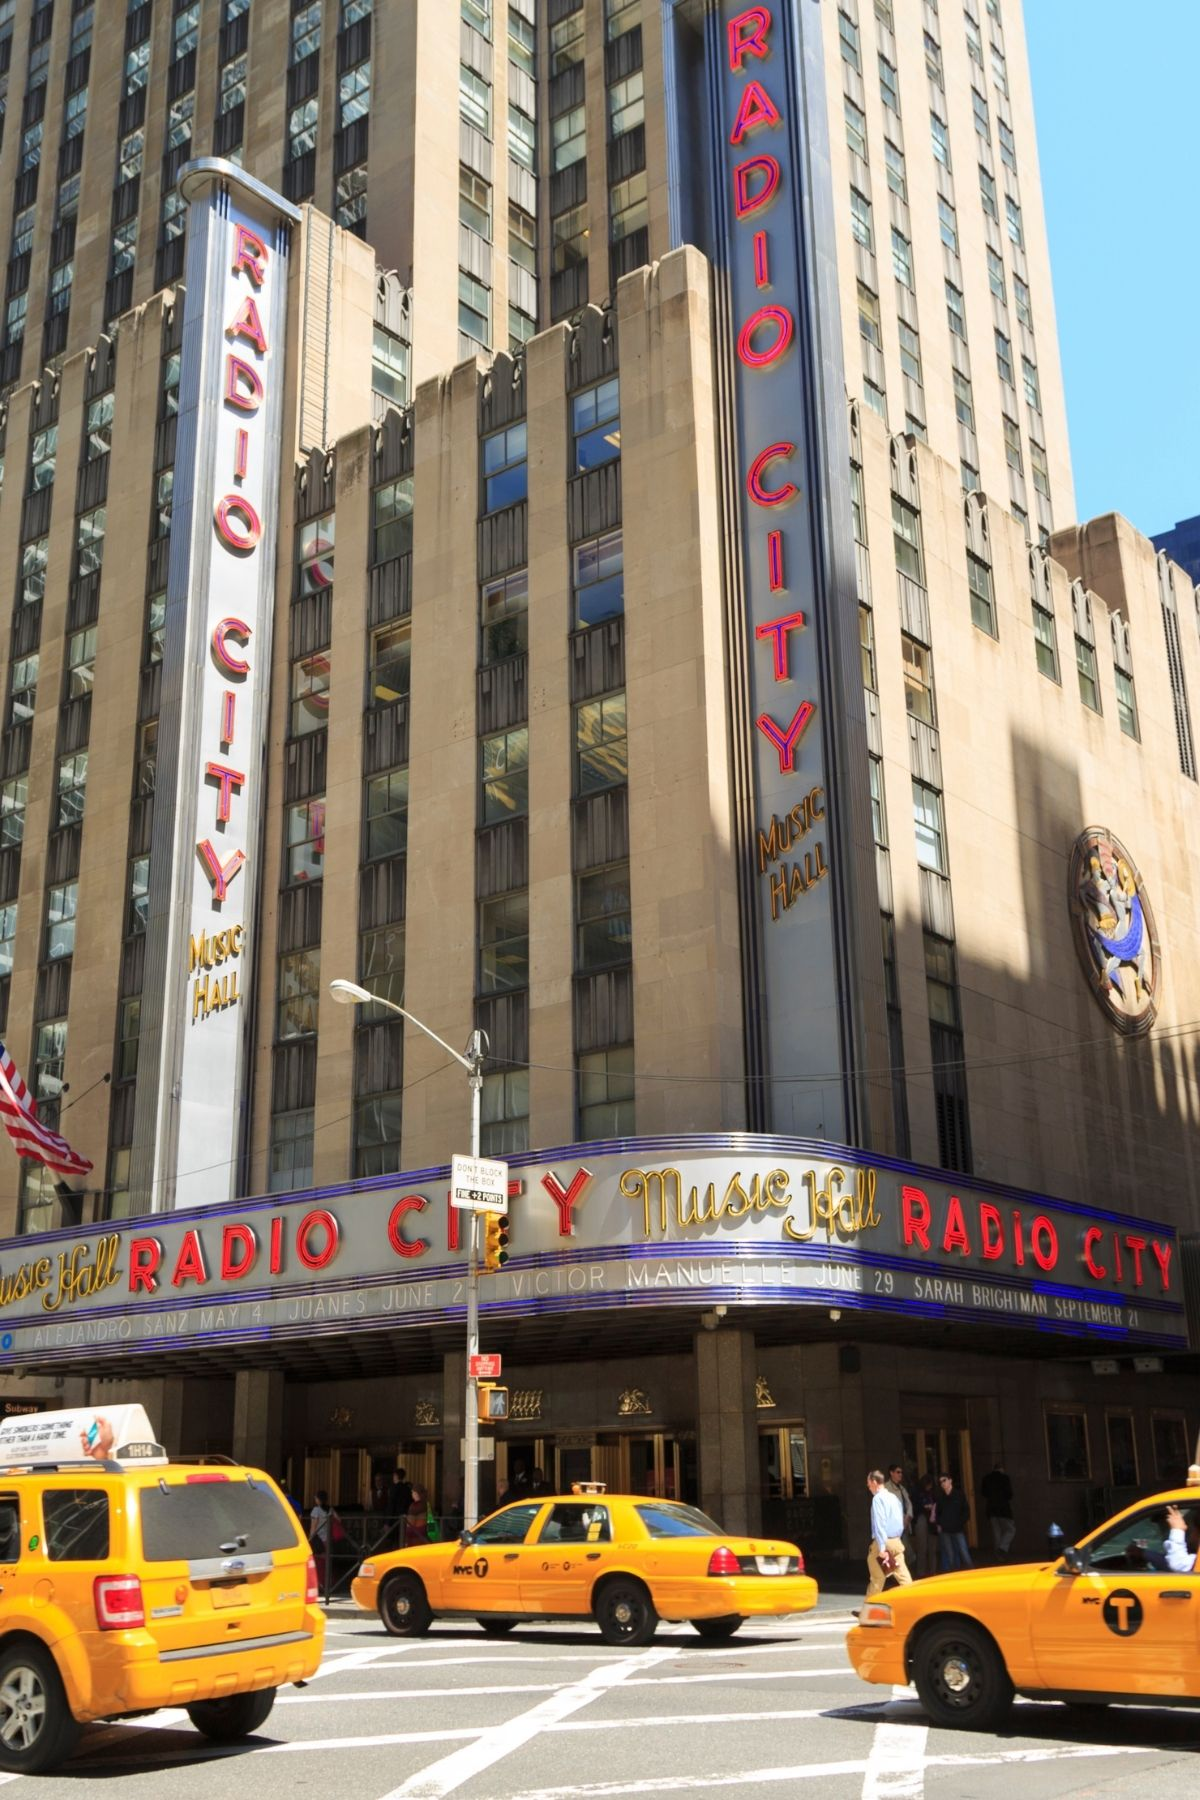 Yellow cabs in front of the Radio City Music Hall in NYC